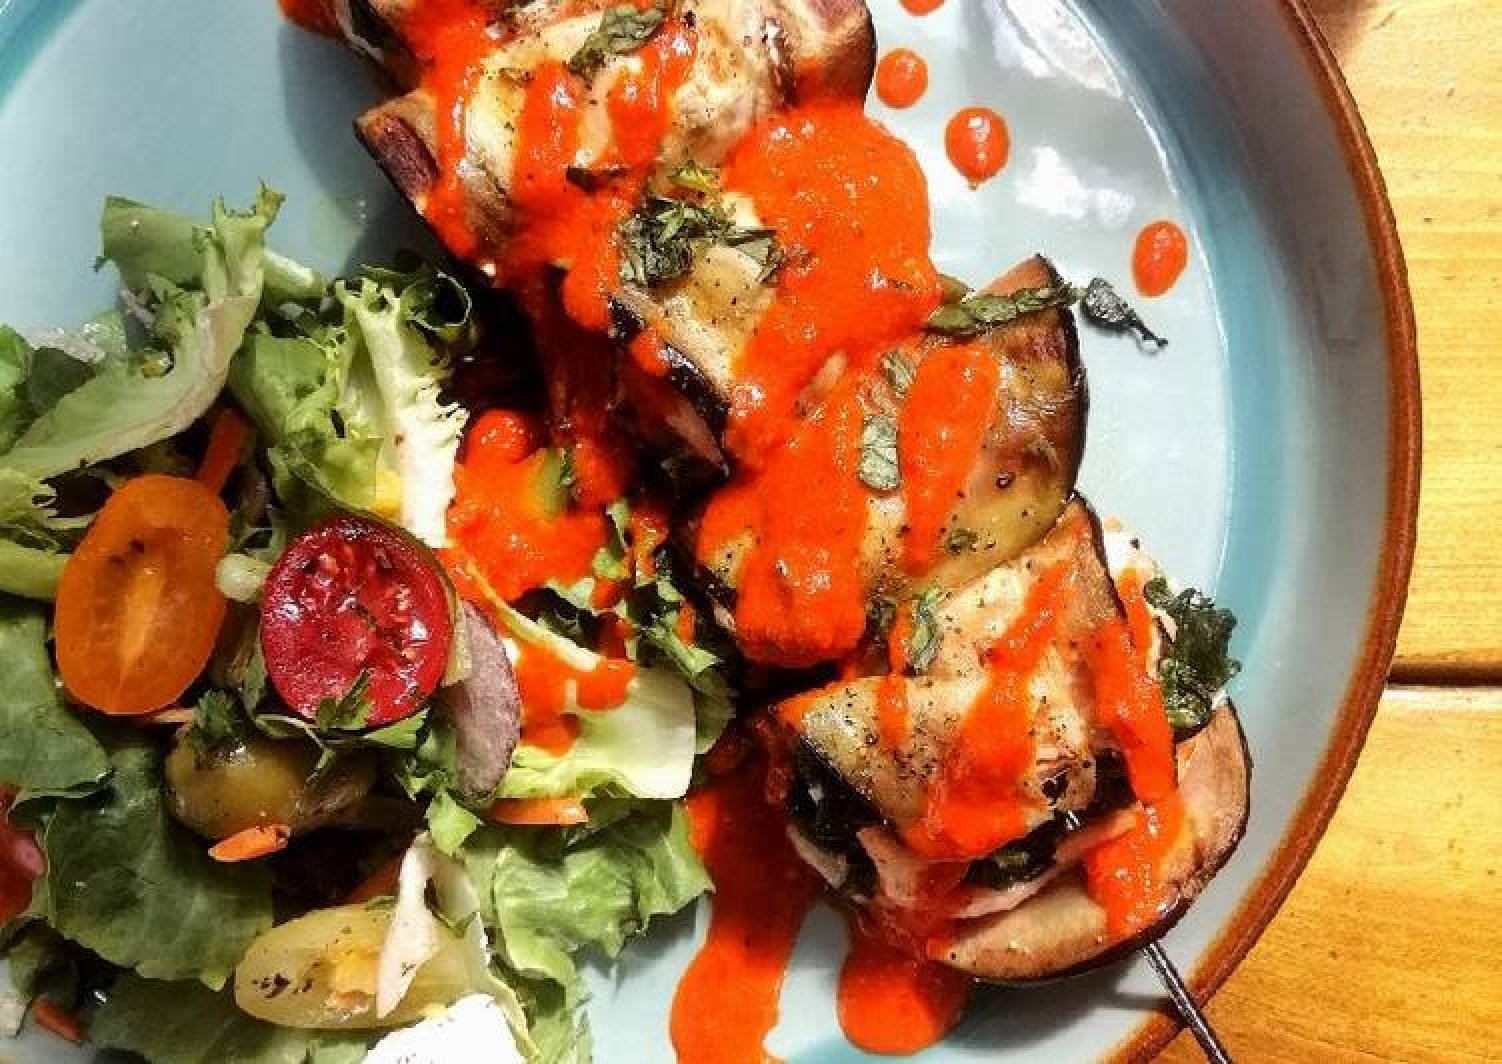 Salmon,aubergine and spinach skewers with red pepper dressing